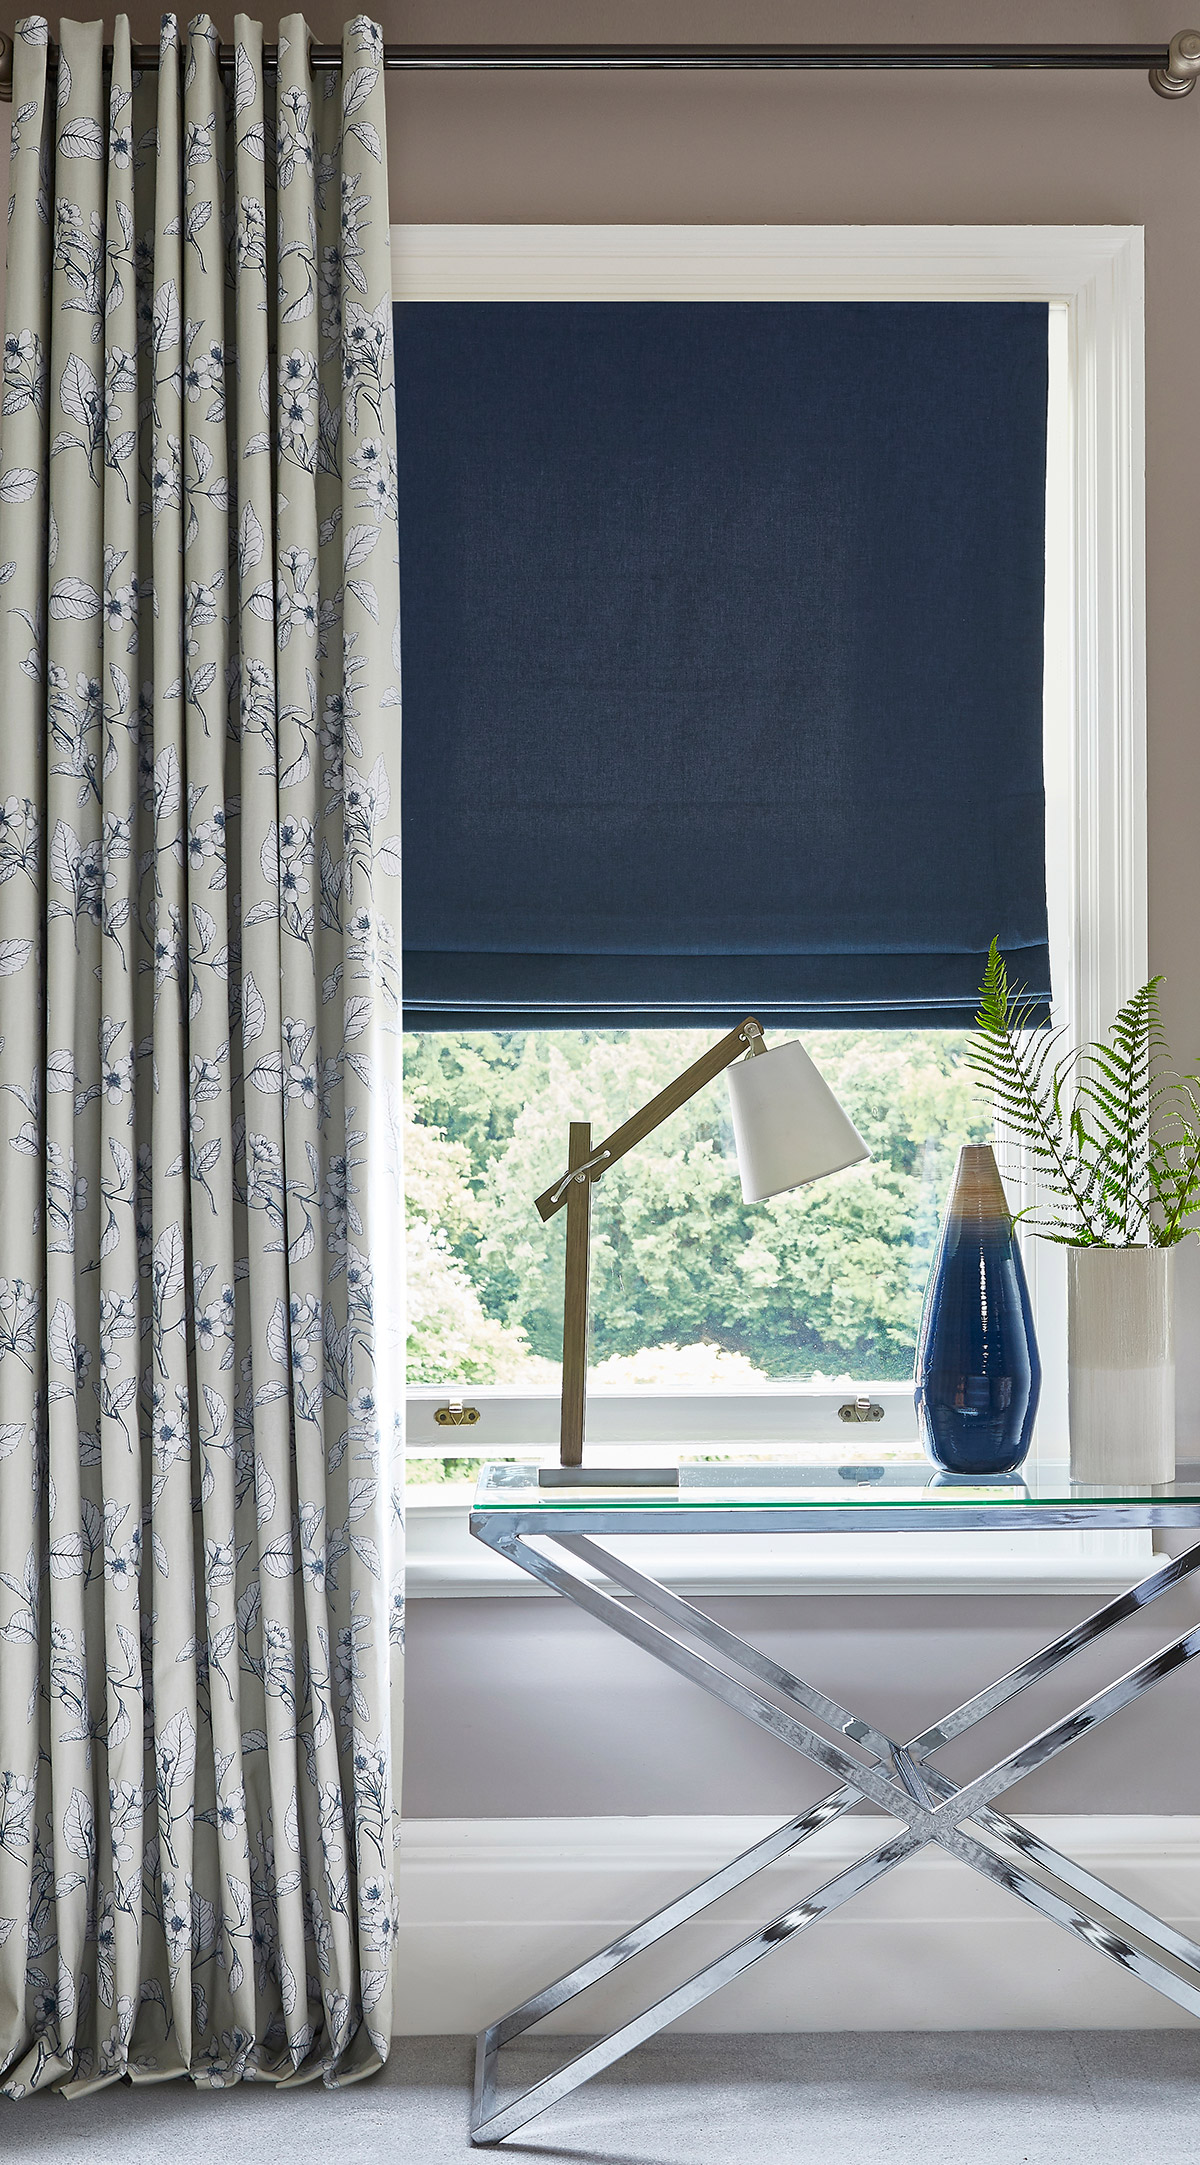 Oslo Oxford Roman Blind from SLX